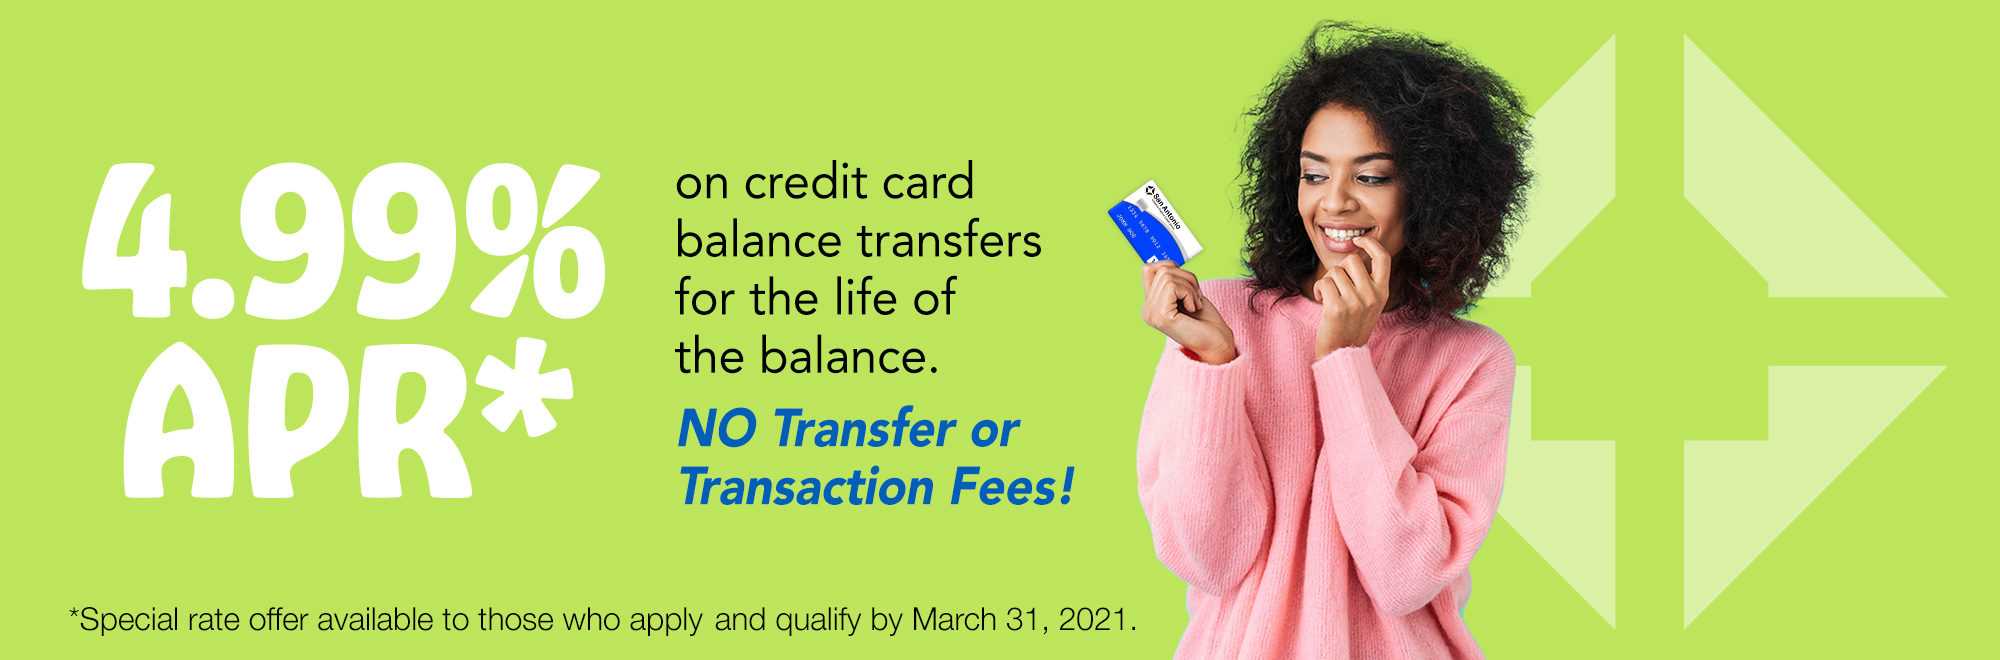 "Image of a woman holding a SACFCU credit card with text reading, ""4.99% APR on credit card balance transfers for the life of the balance. No transfer or transactions fees!"""